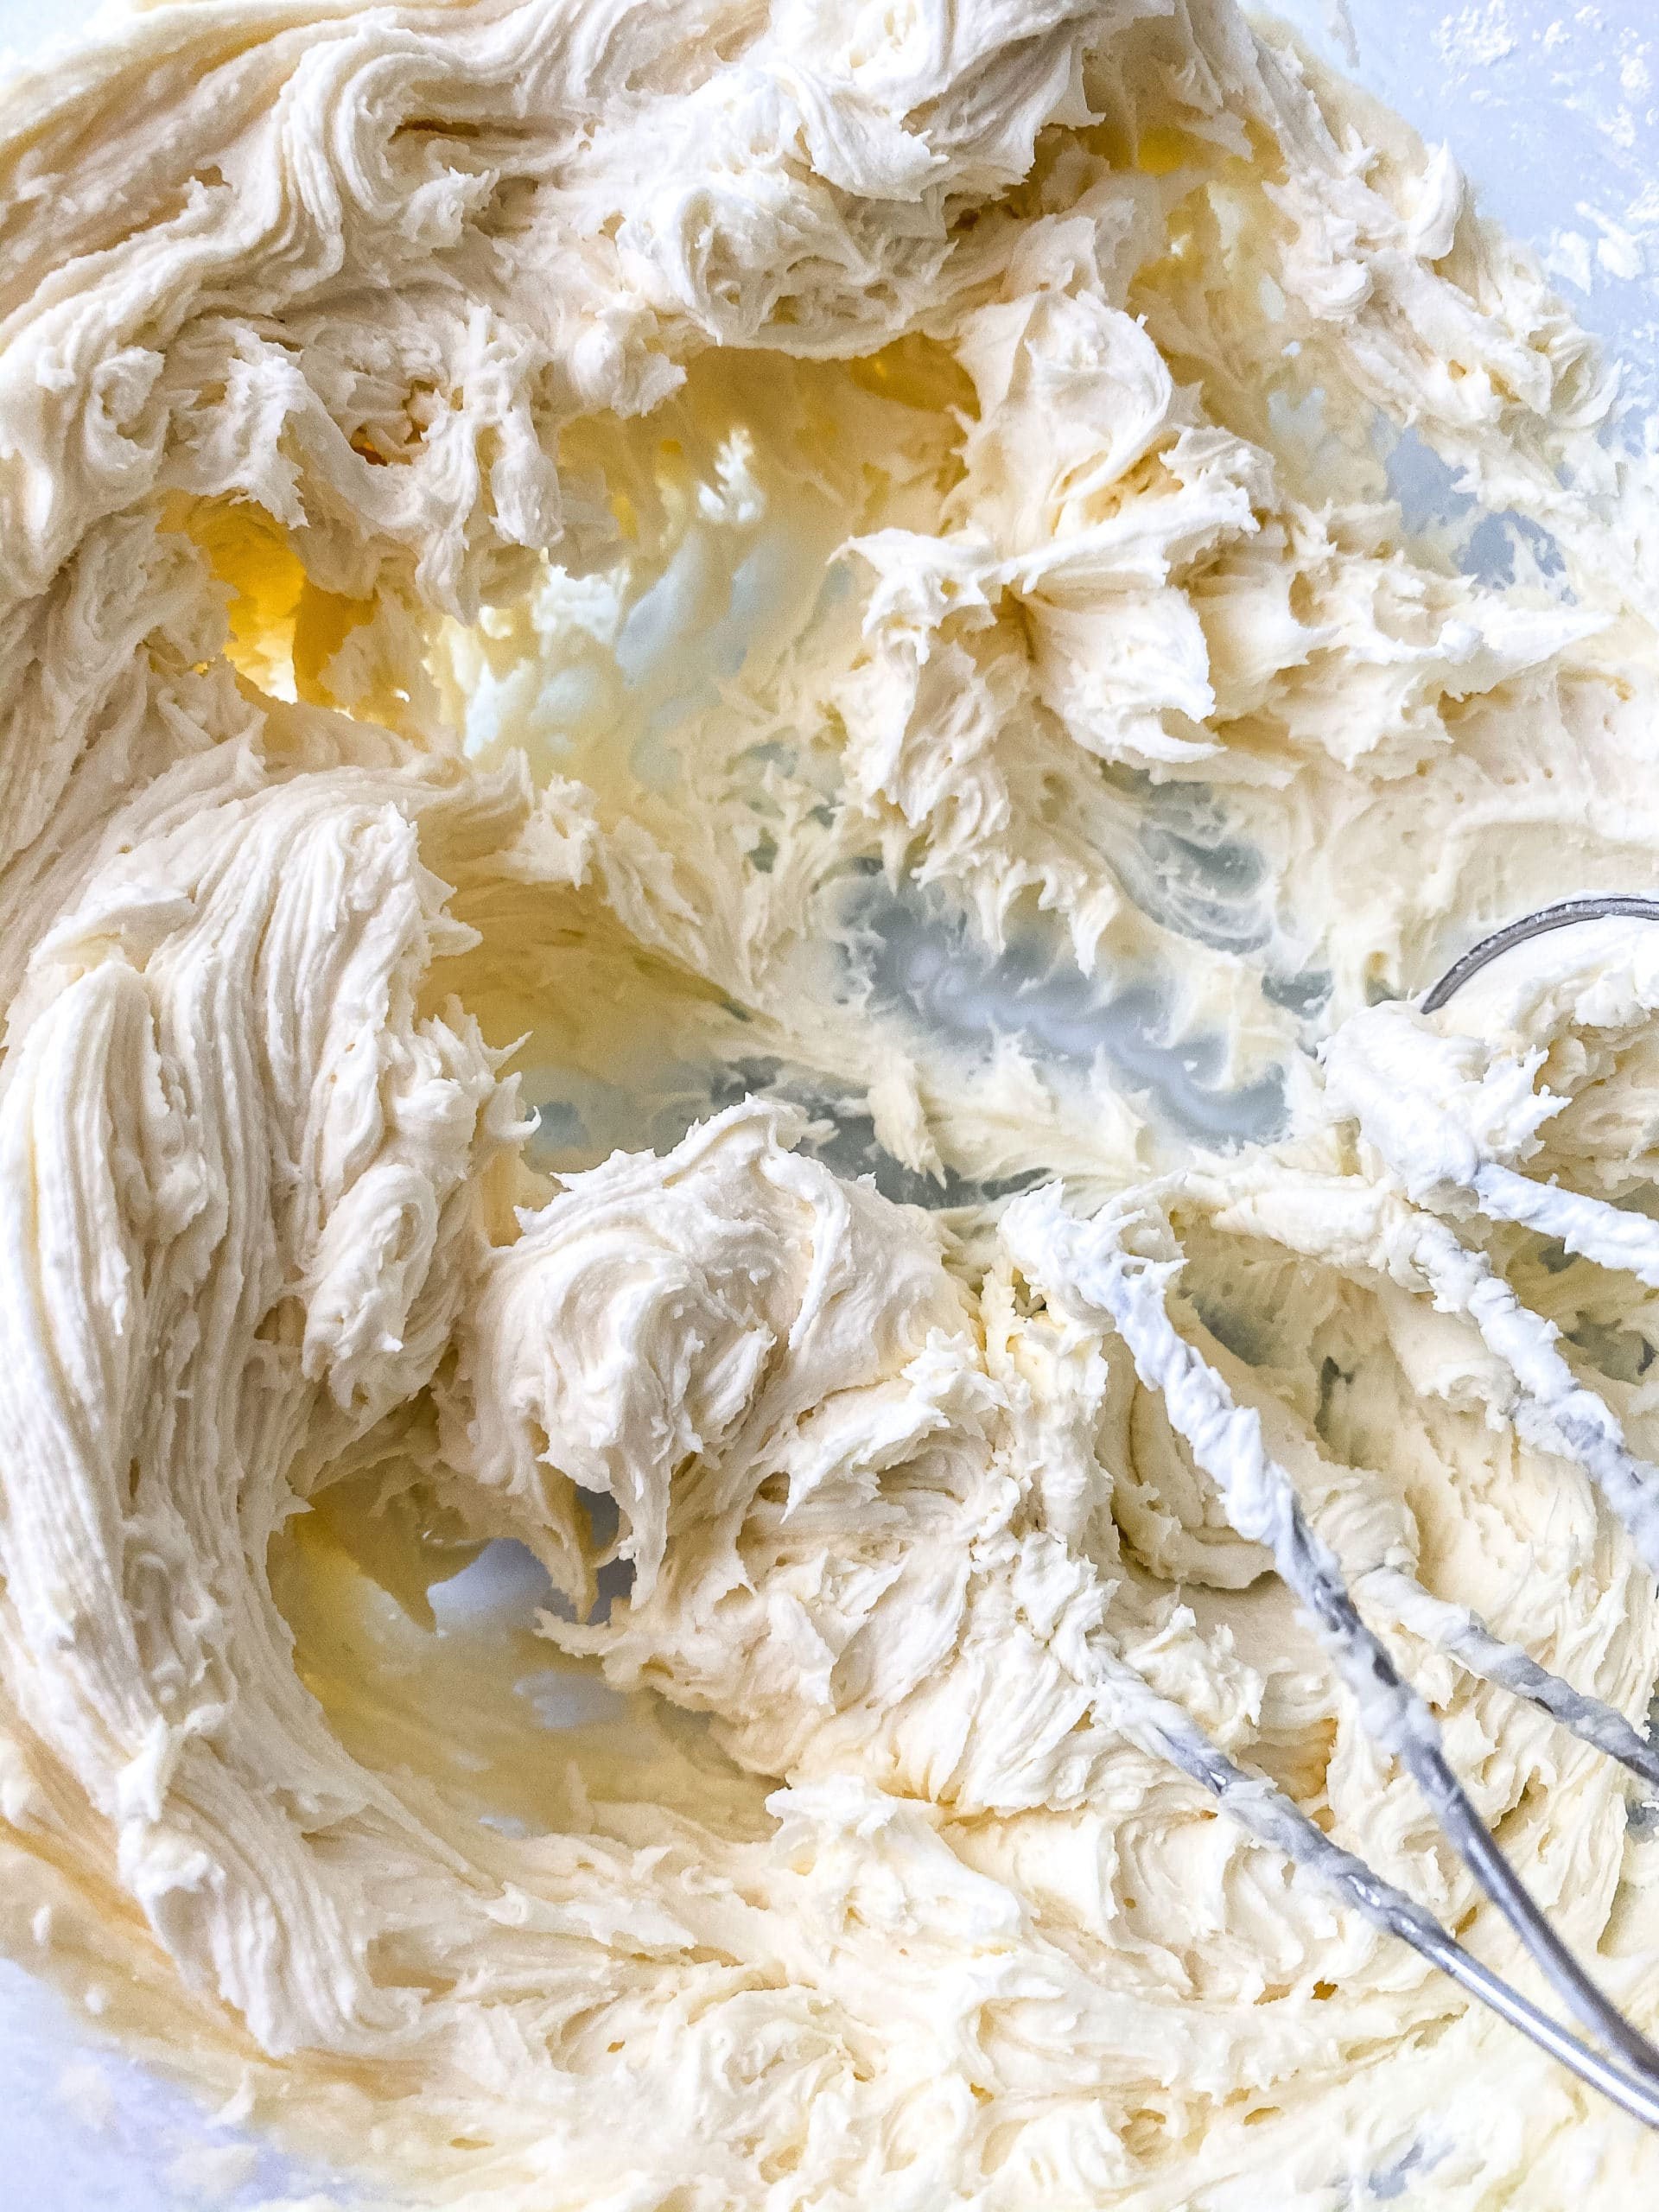 Mixing the Sour Cream Lemon Cookies frosting